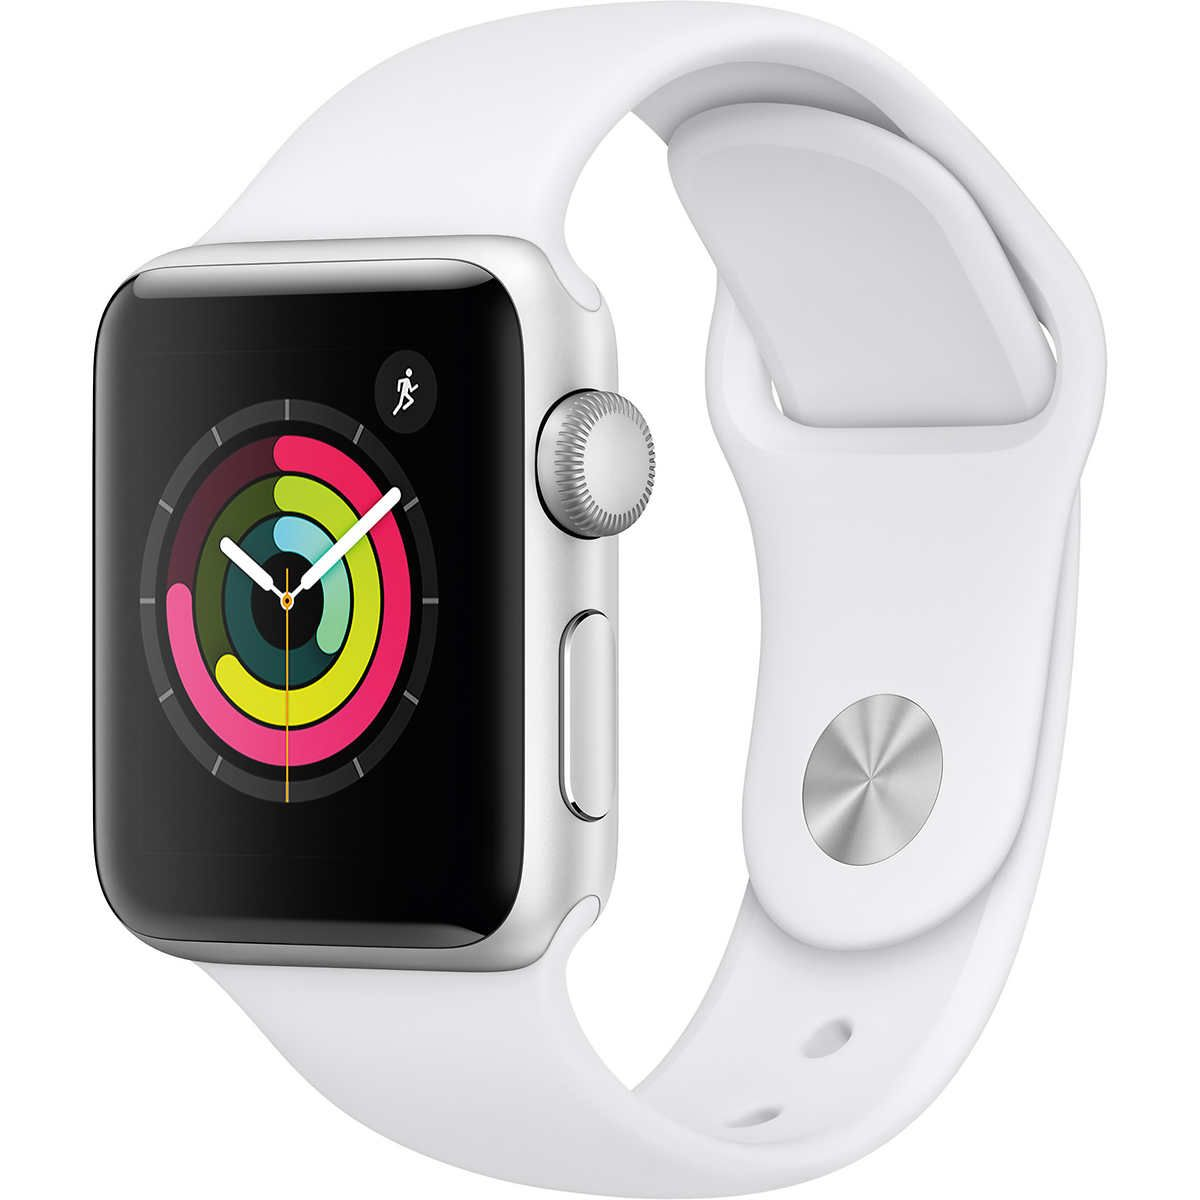 Apple Watch Series 3 Gps 38mm With White Sport Band Silver Buy Apple Watch New Apple Watch Apple Watch